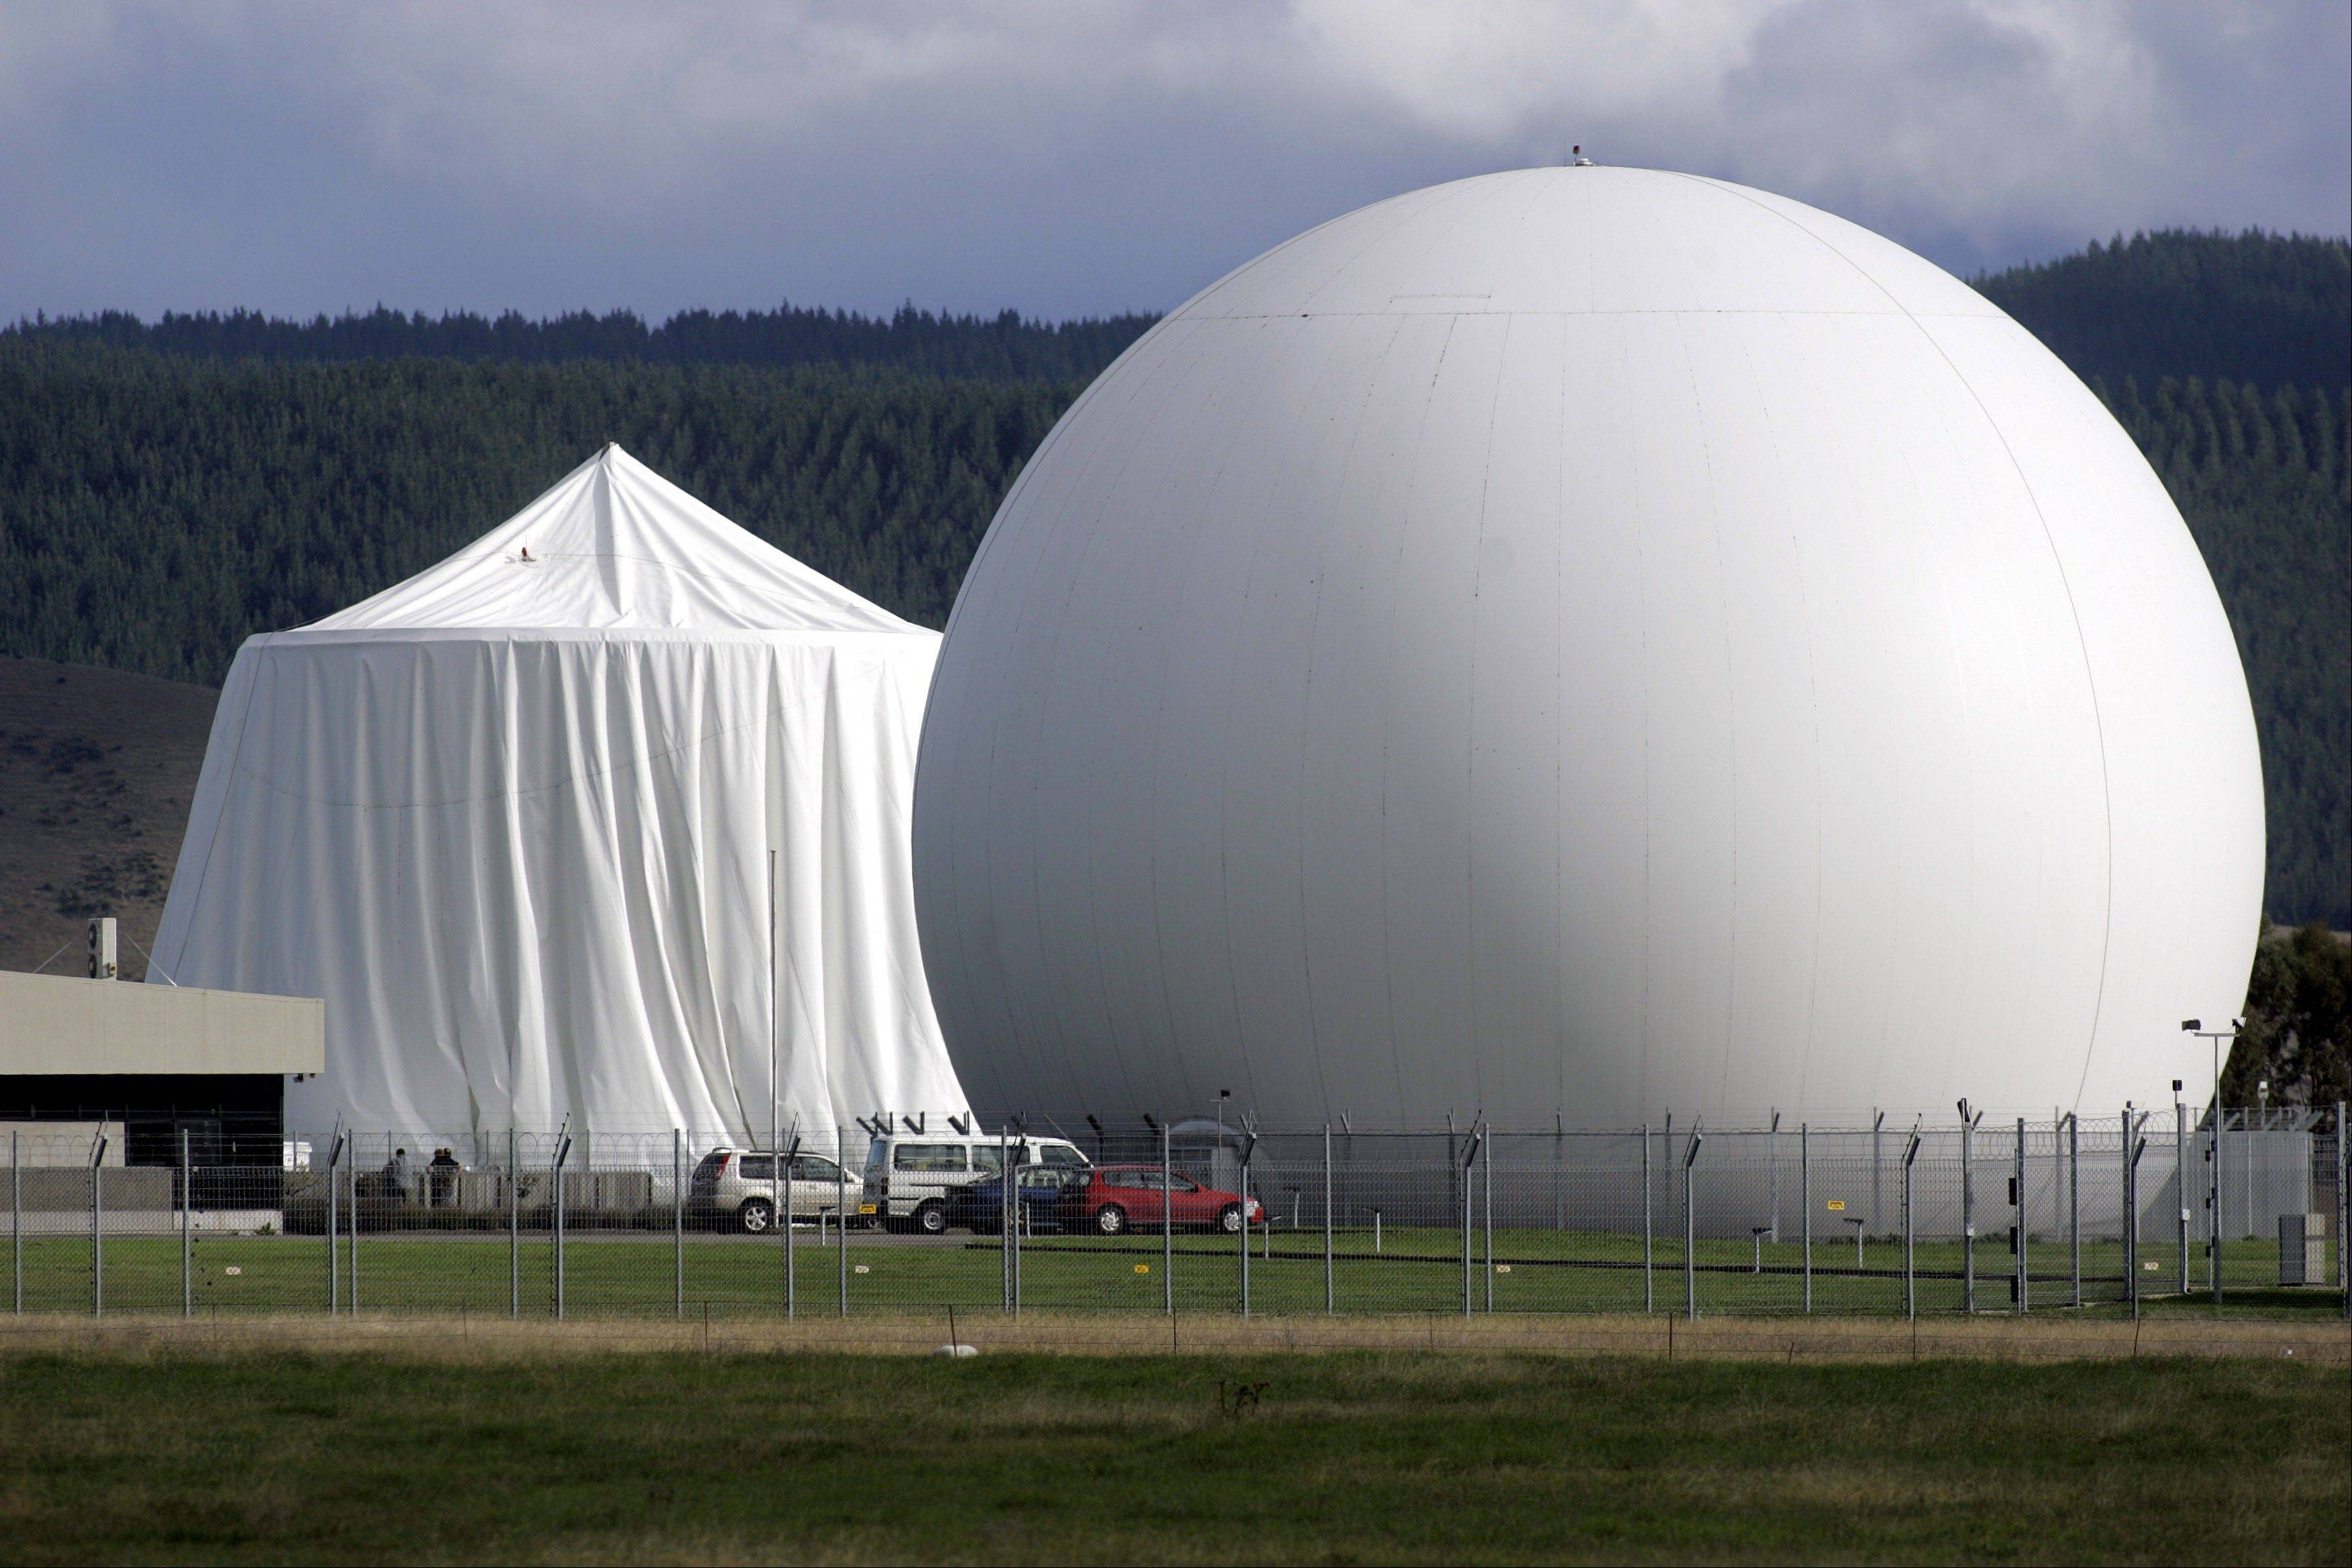 This photo from 2008 shows a satellite communications dome at Waihopai satellite communications interception station near Blenheim, New Zealand. Waihopai satellite communications is part of a surveillance spying alliance known as Five Eyes that groups together five English-speaking democracies � the U.S., Britain, Canada, Australia and New Zealand.